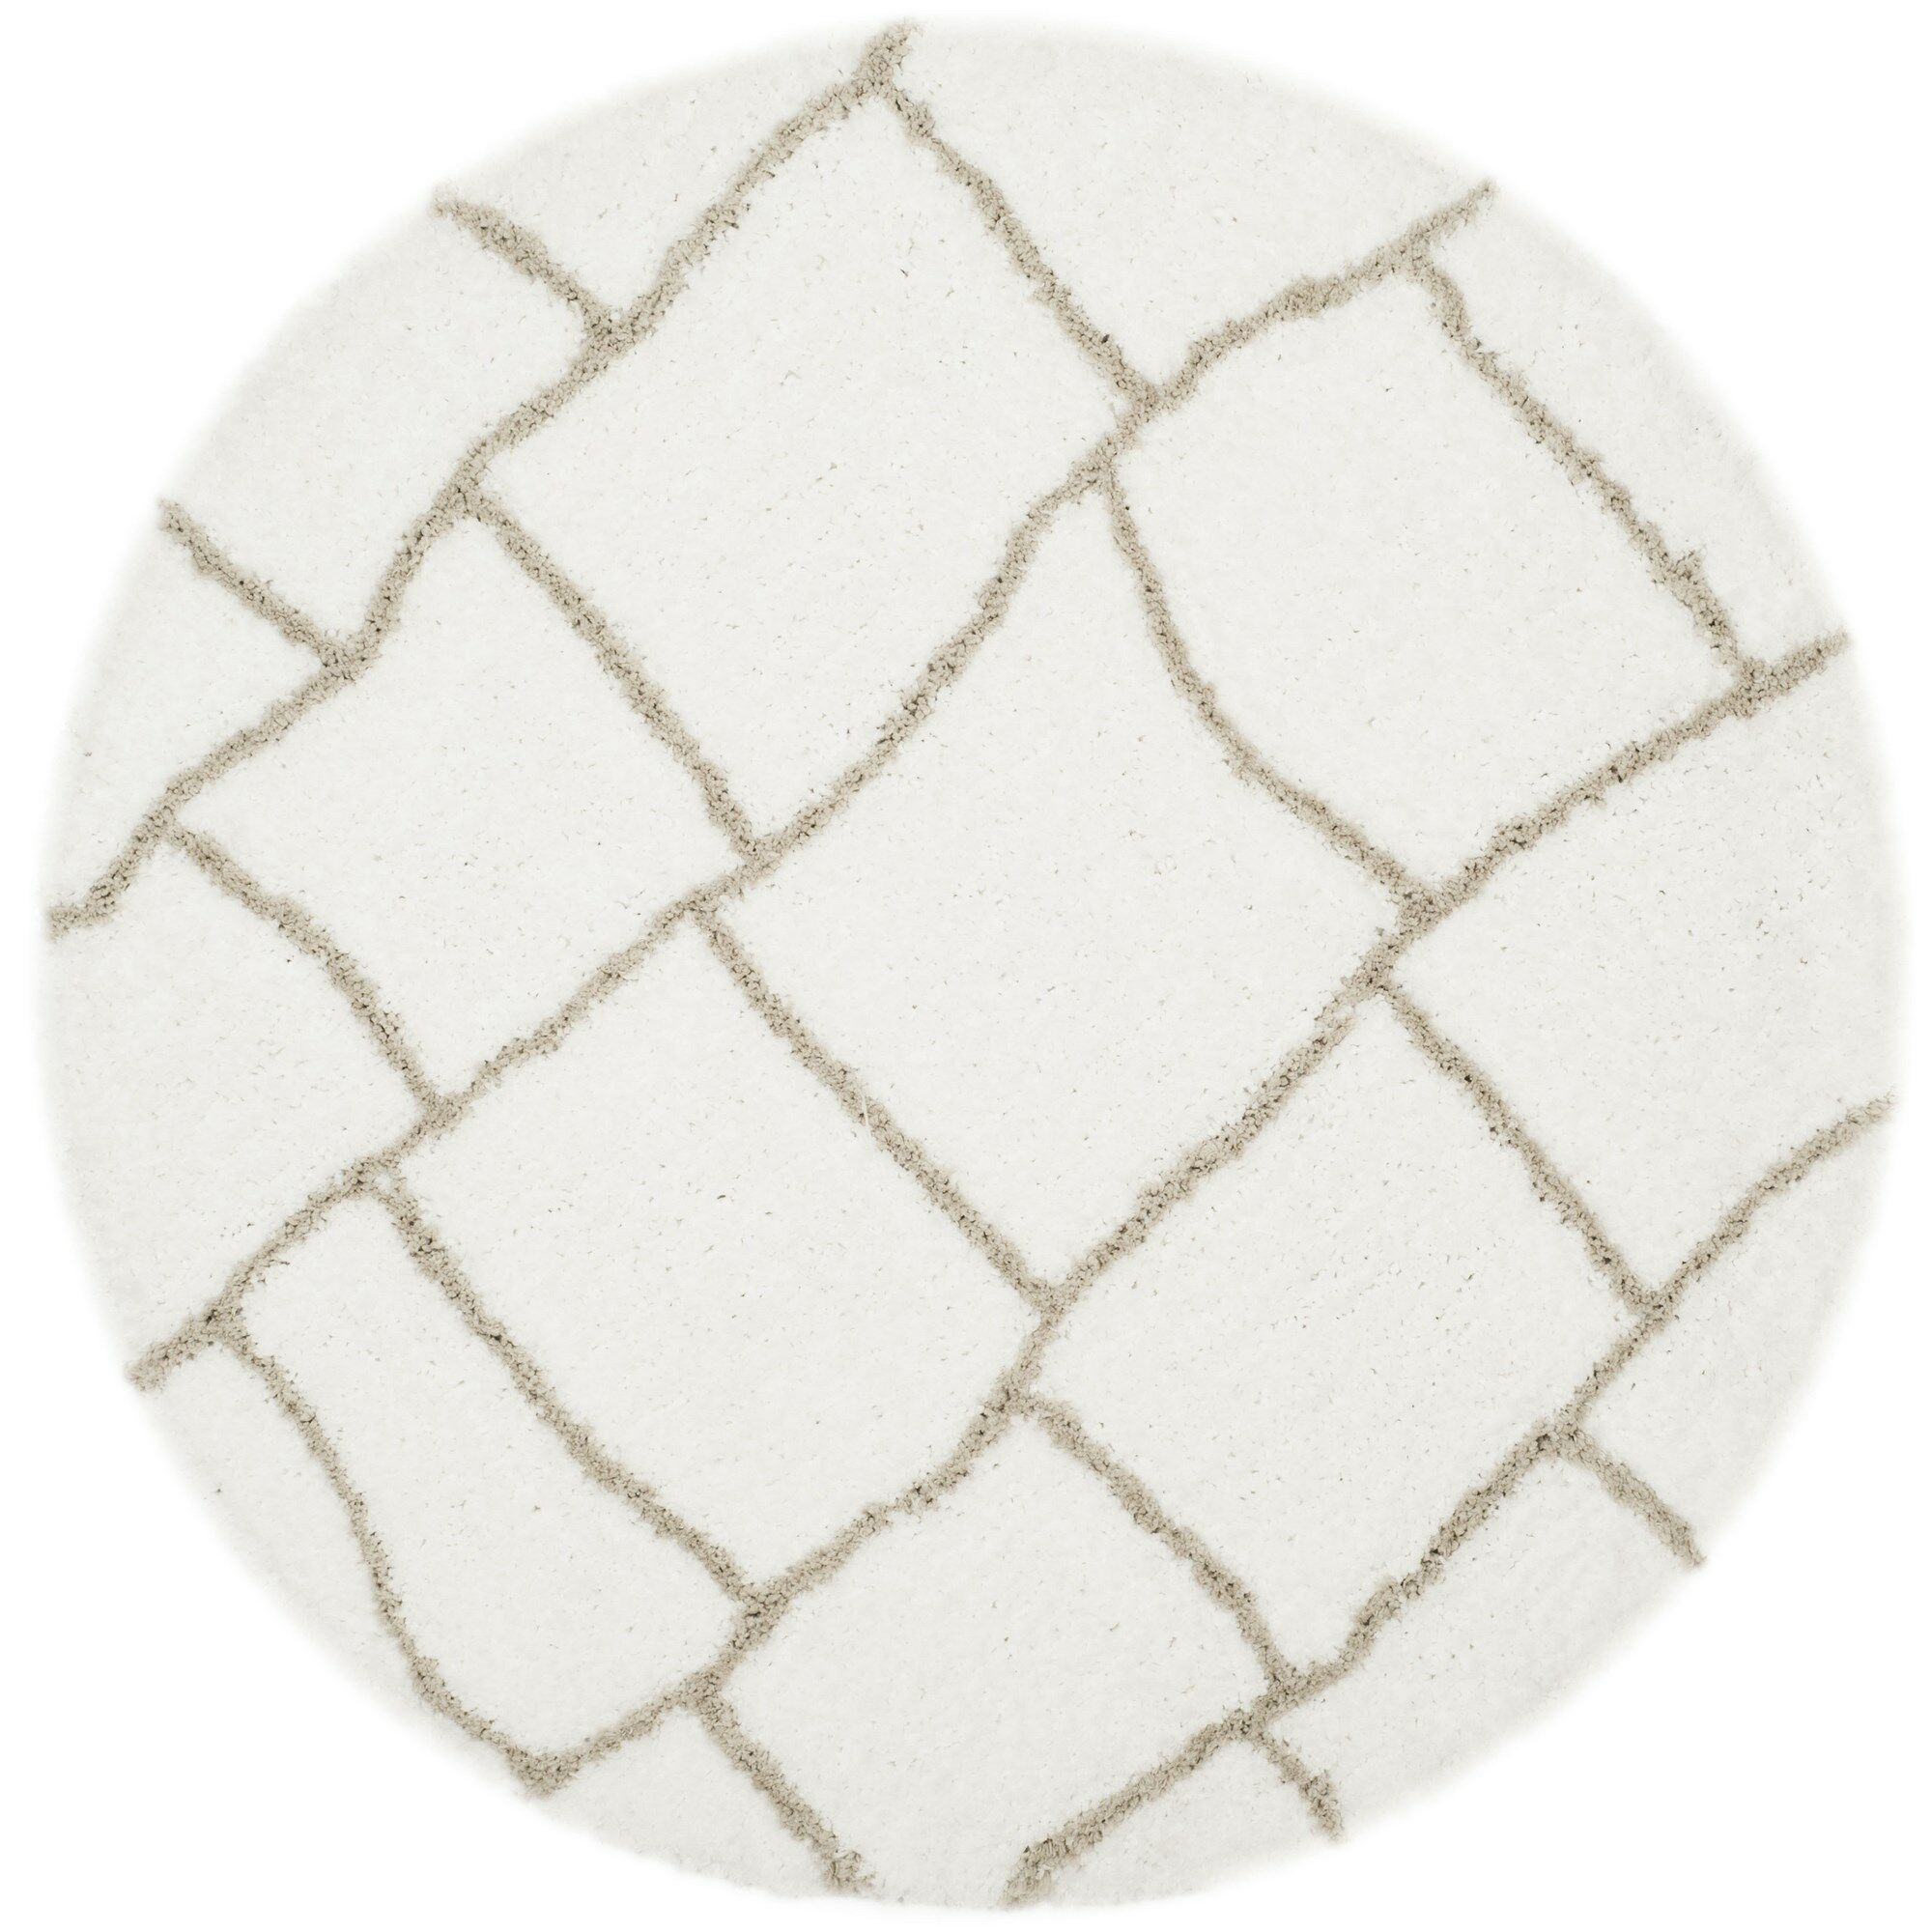 Shead Hand-Tufted Ivory/Silver Area Rug Rug Size: Round 5' x 5'